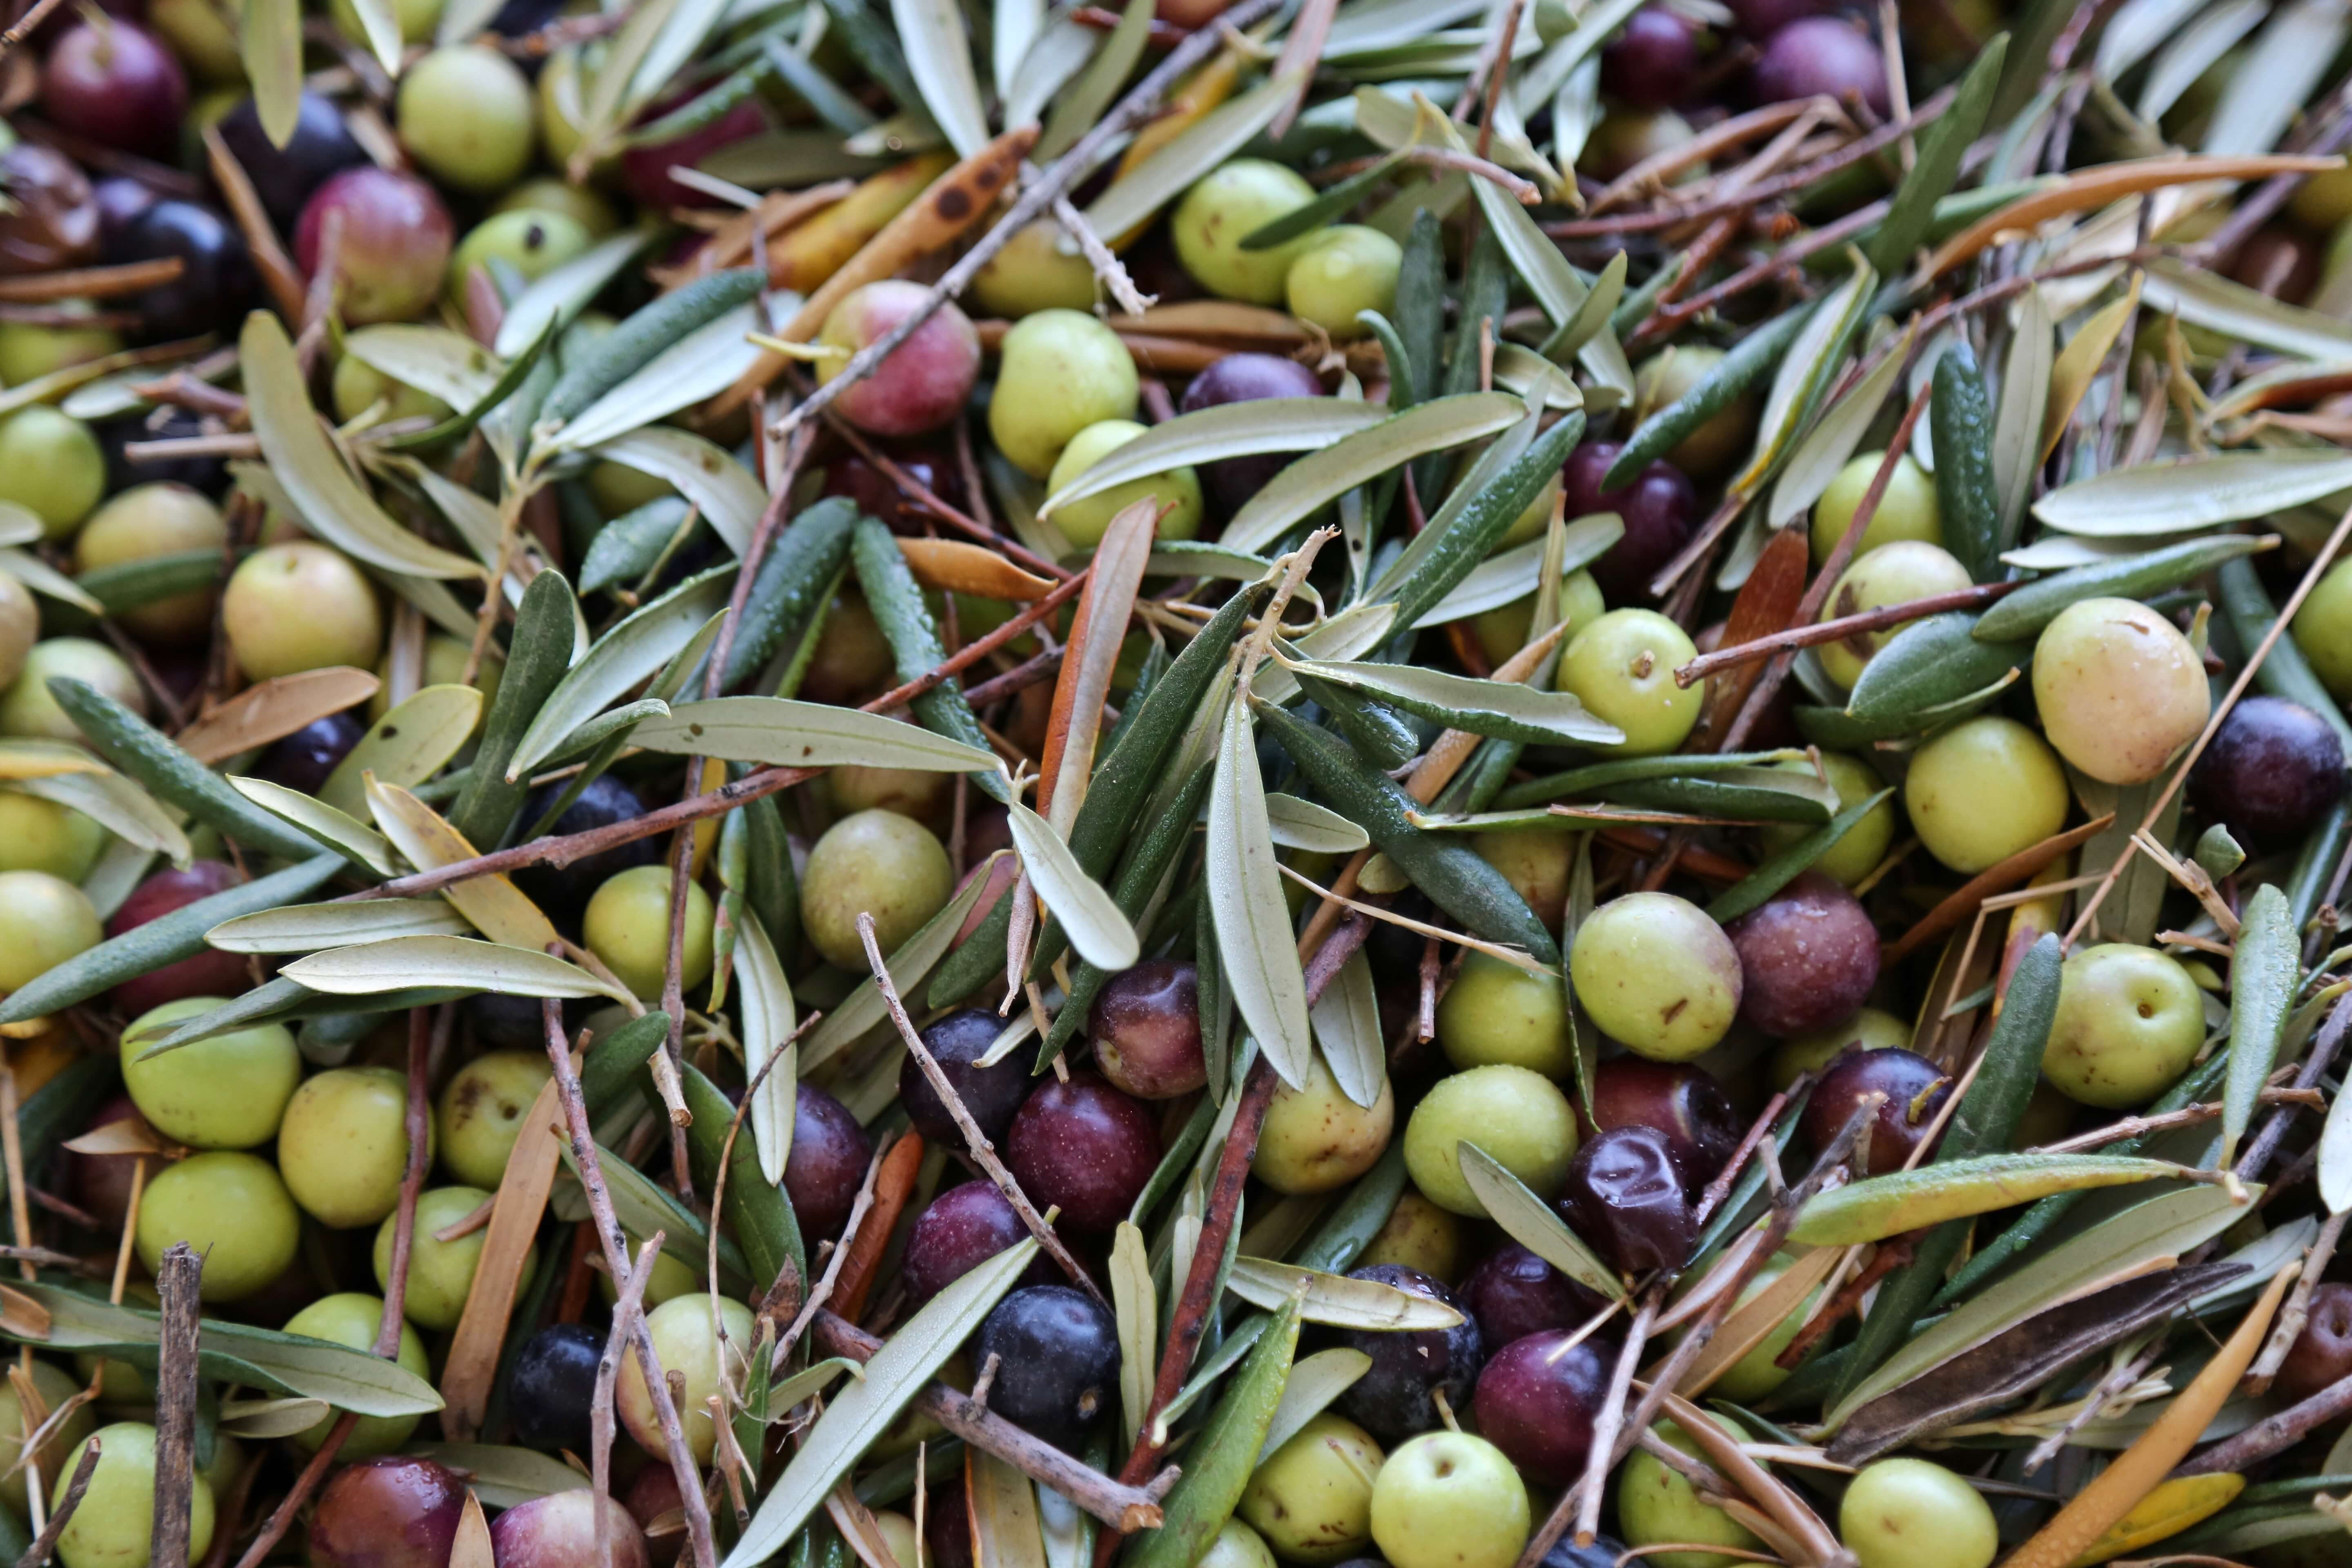 Olive harvest - Why Spain Should be Your Next Culinary Destination, Delectable Destinations, Carol Ketelson